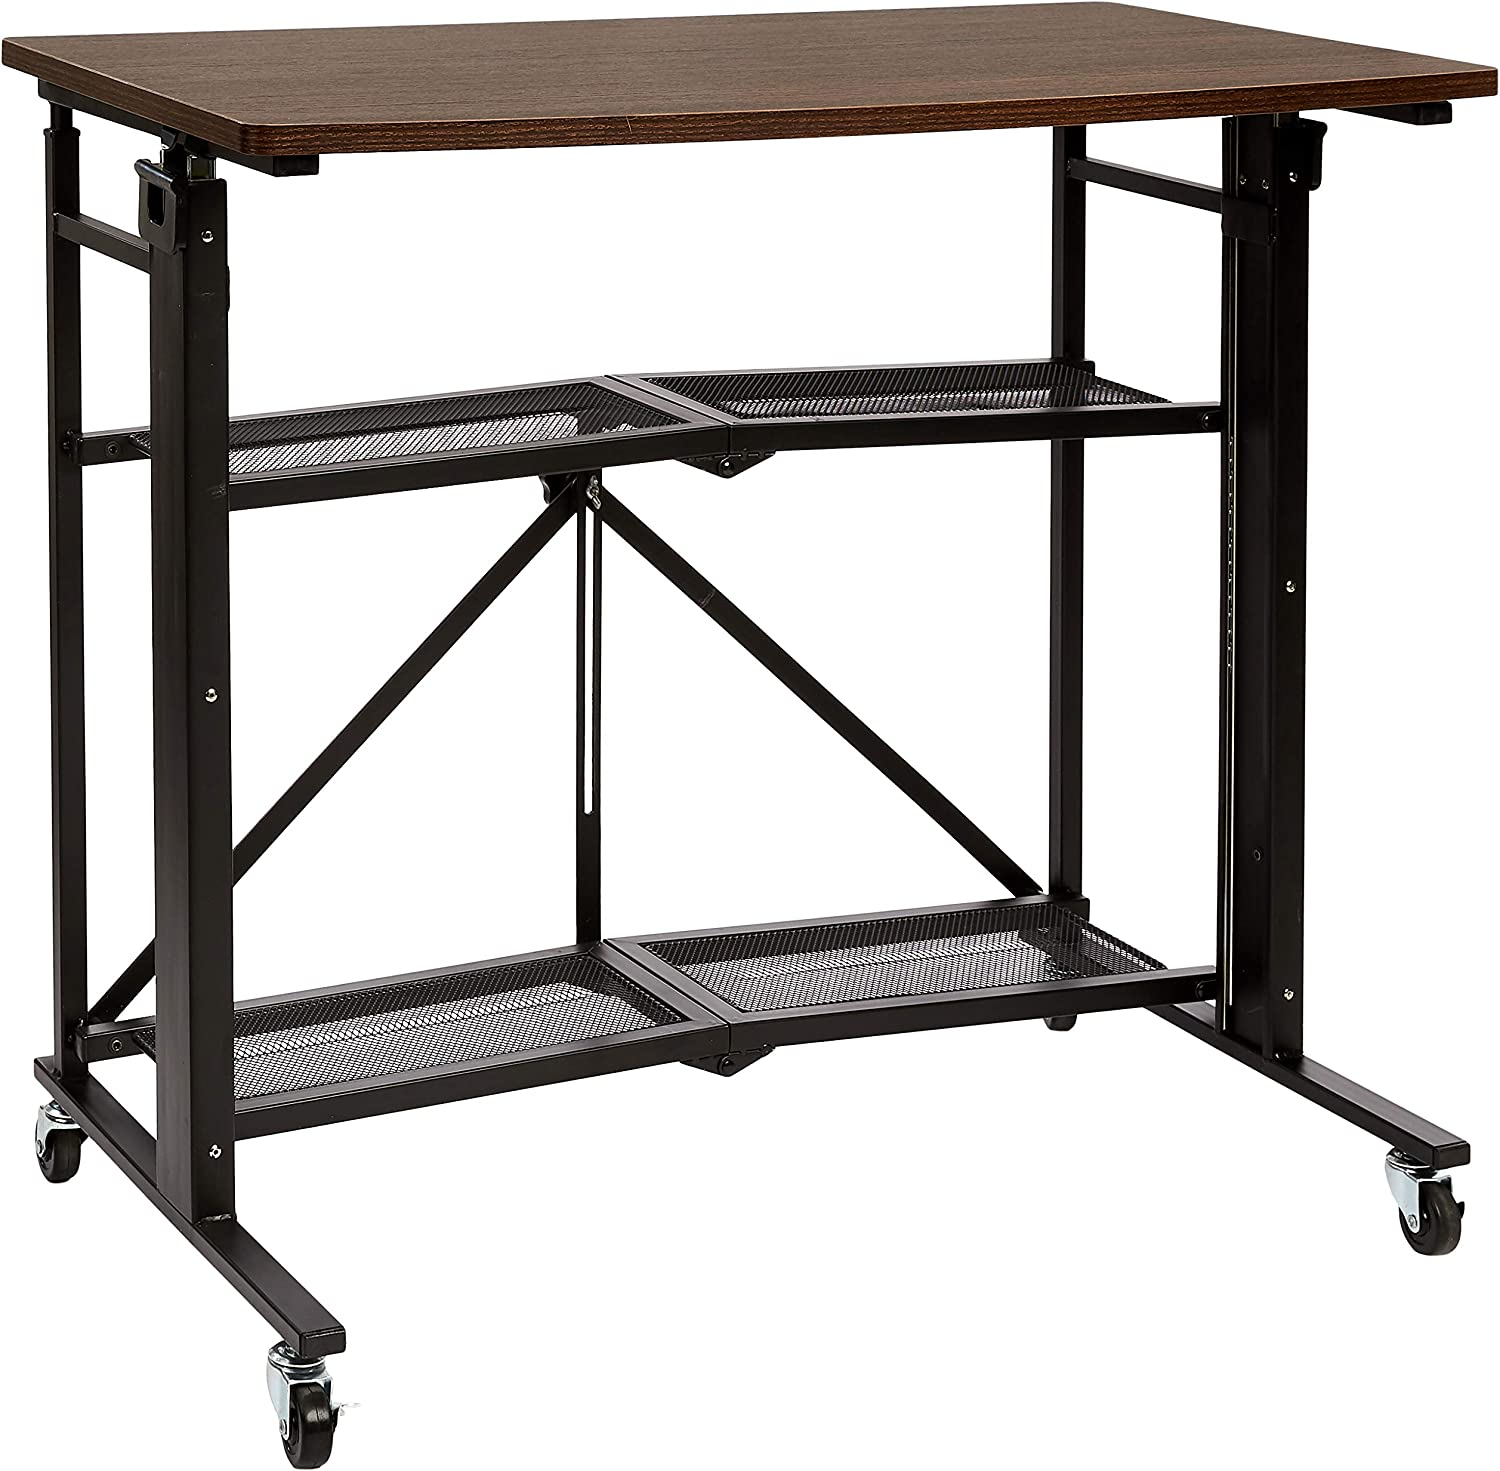 AmazonBasics Foldable Standing Computer Desk with Storage Shelf, Adjustable Height, Easy Assembly - Espresso